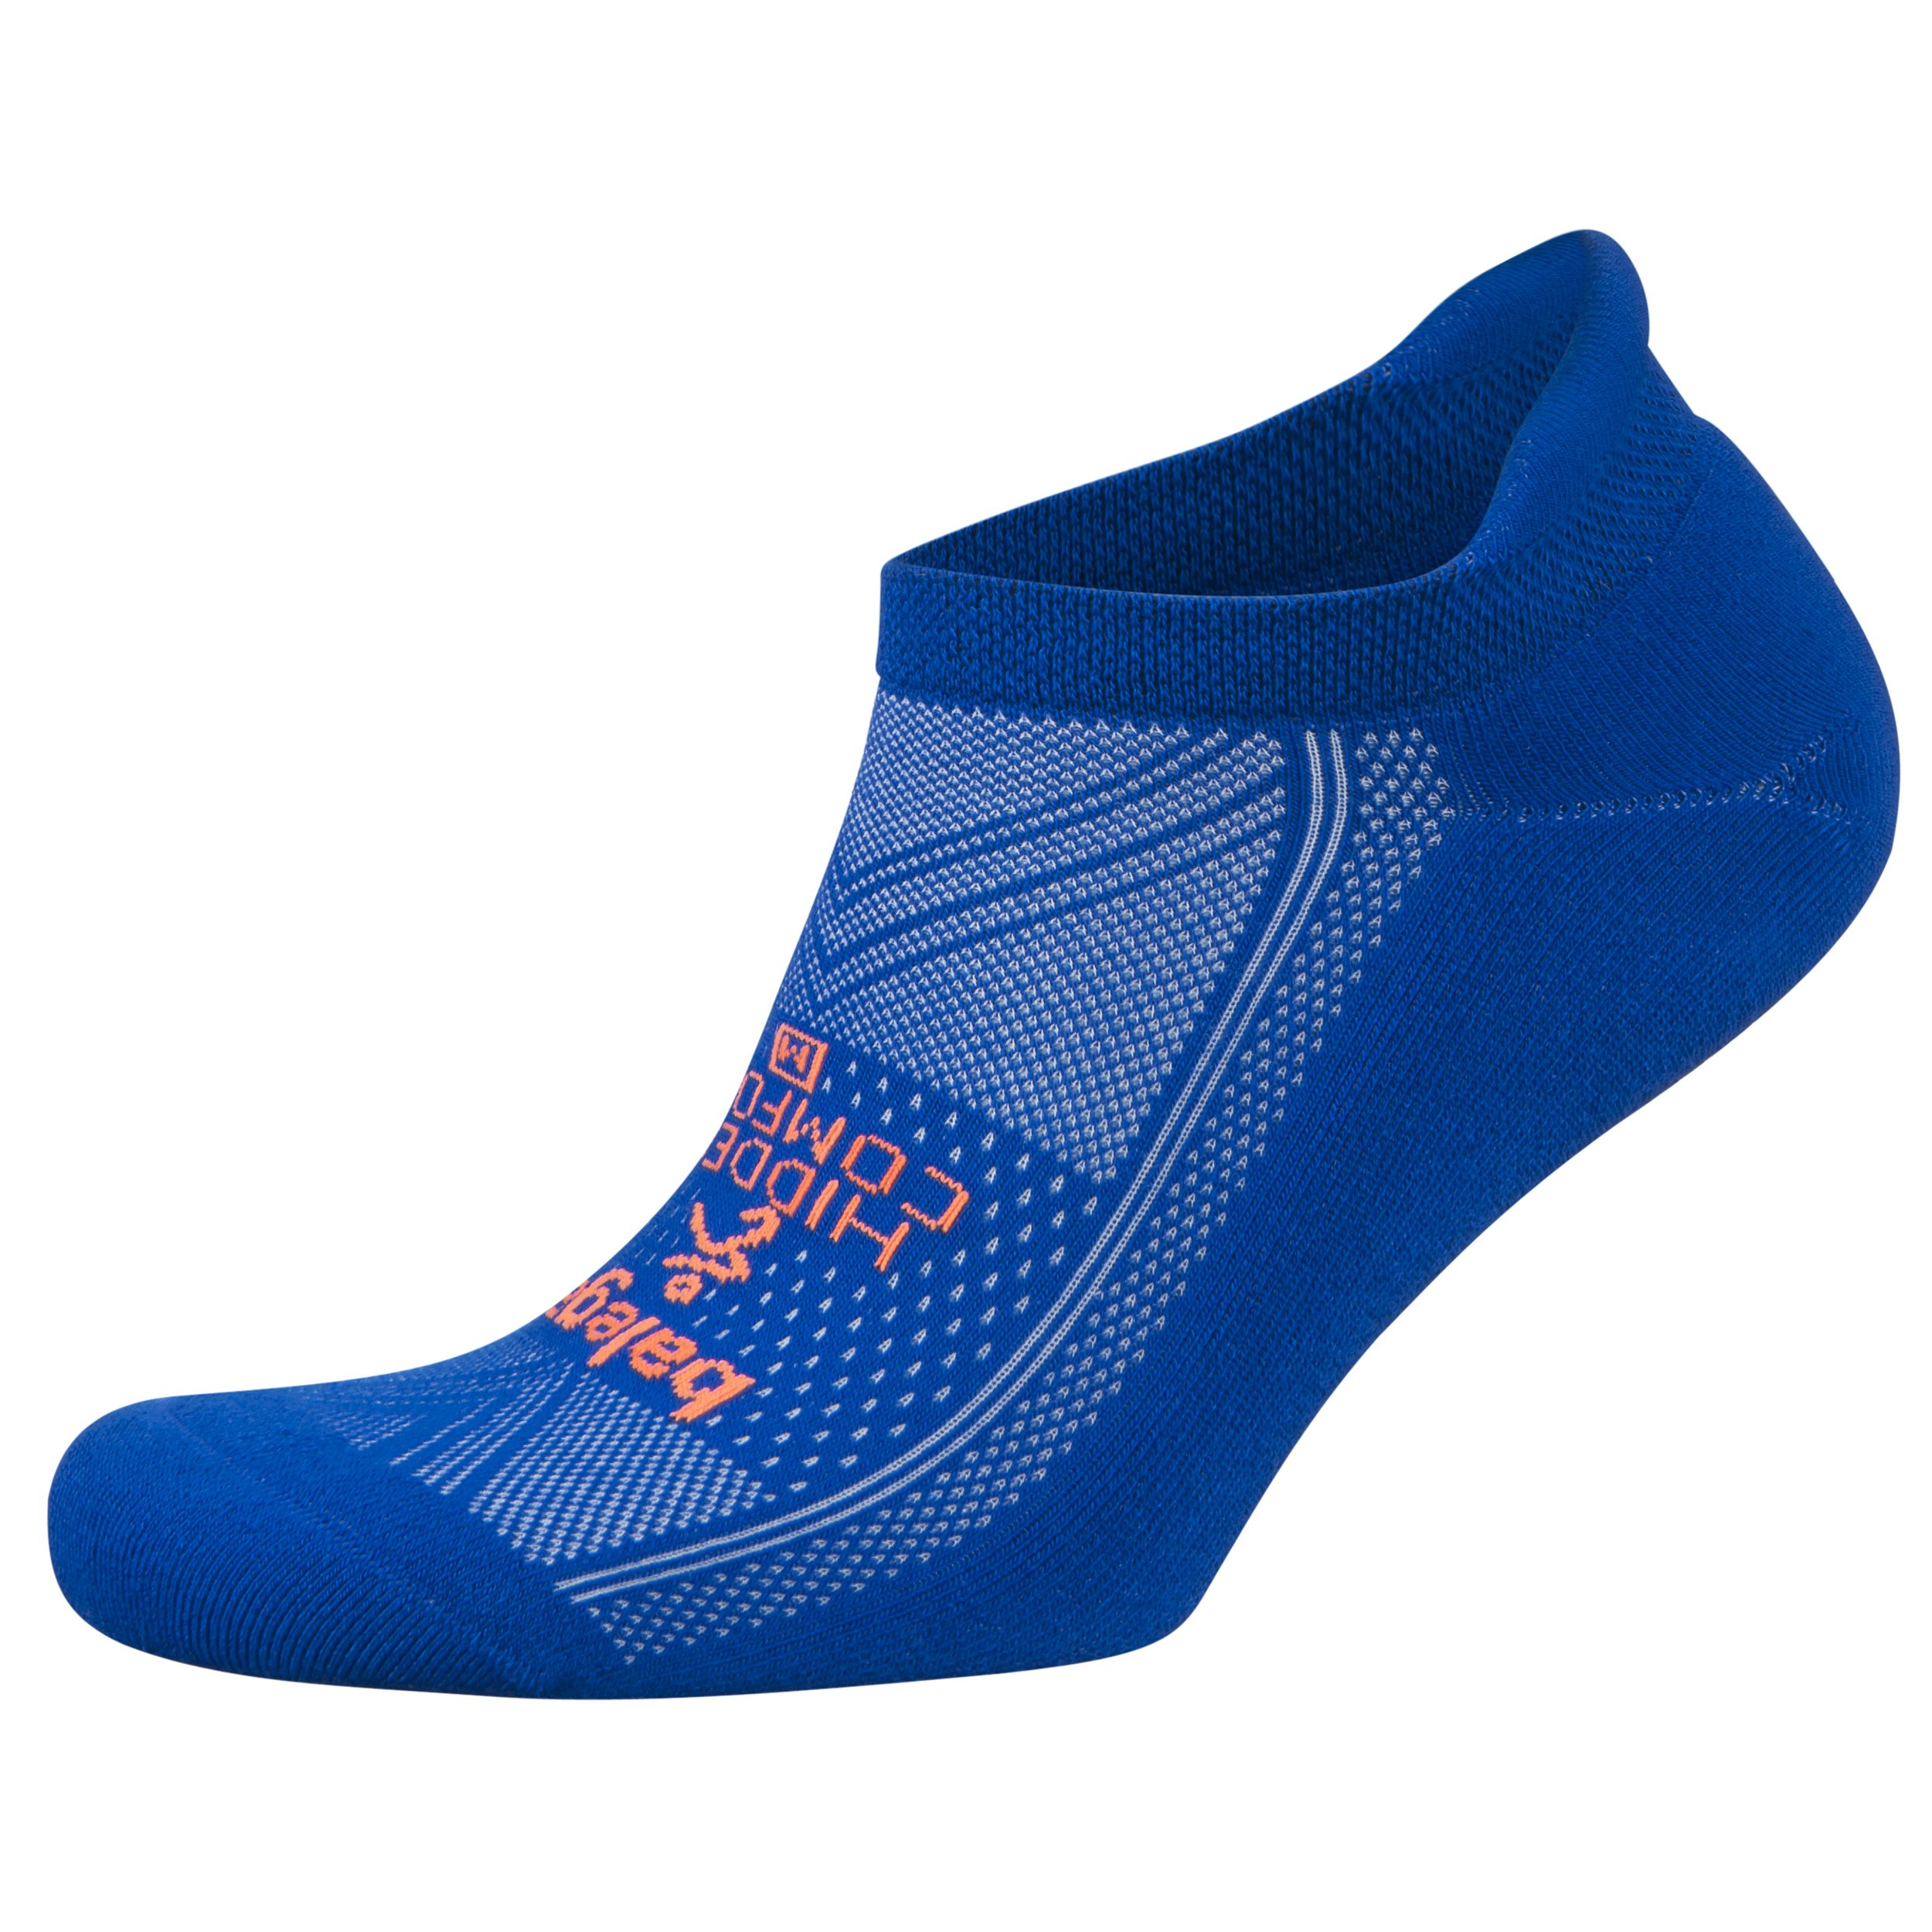 Balega Hidden Comfort No-Show Running Socks for Men and Women (1 Pair), Neon Blue, X-Large by Balega